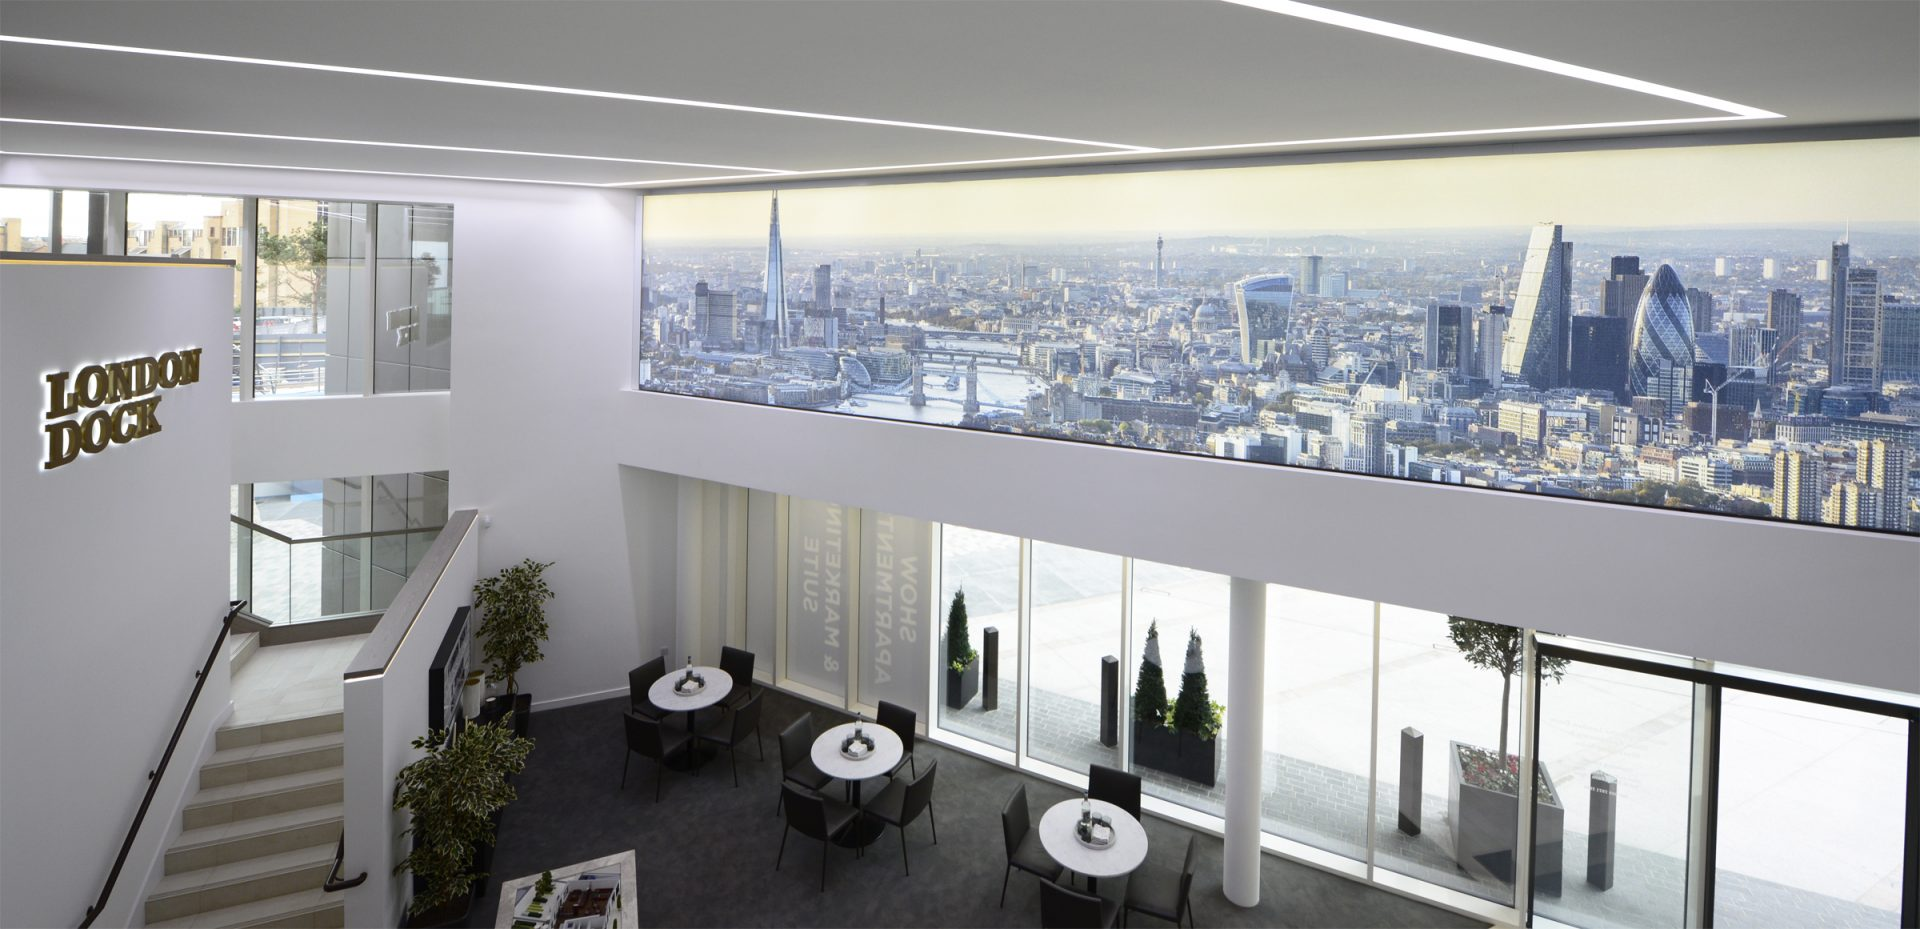 Branded Interiors of the London Dock Marketing Suite, created and installed by Octink